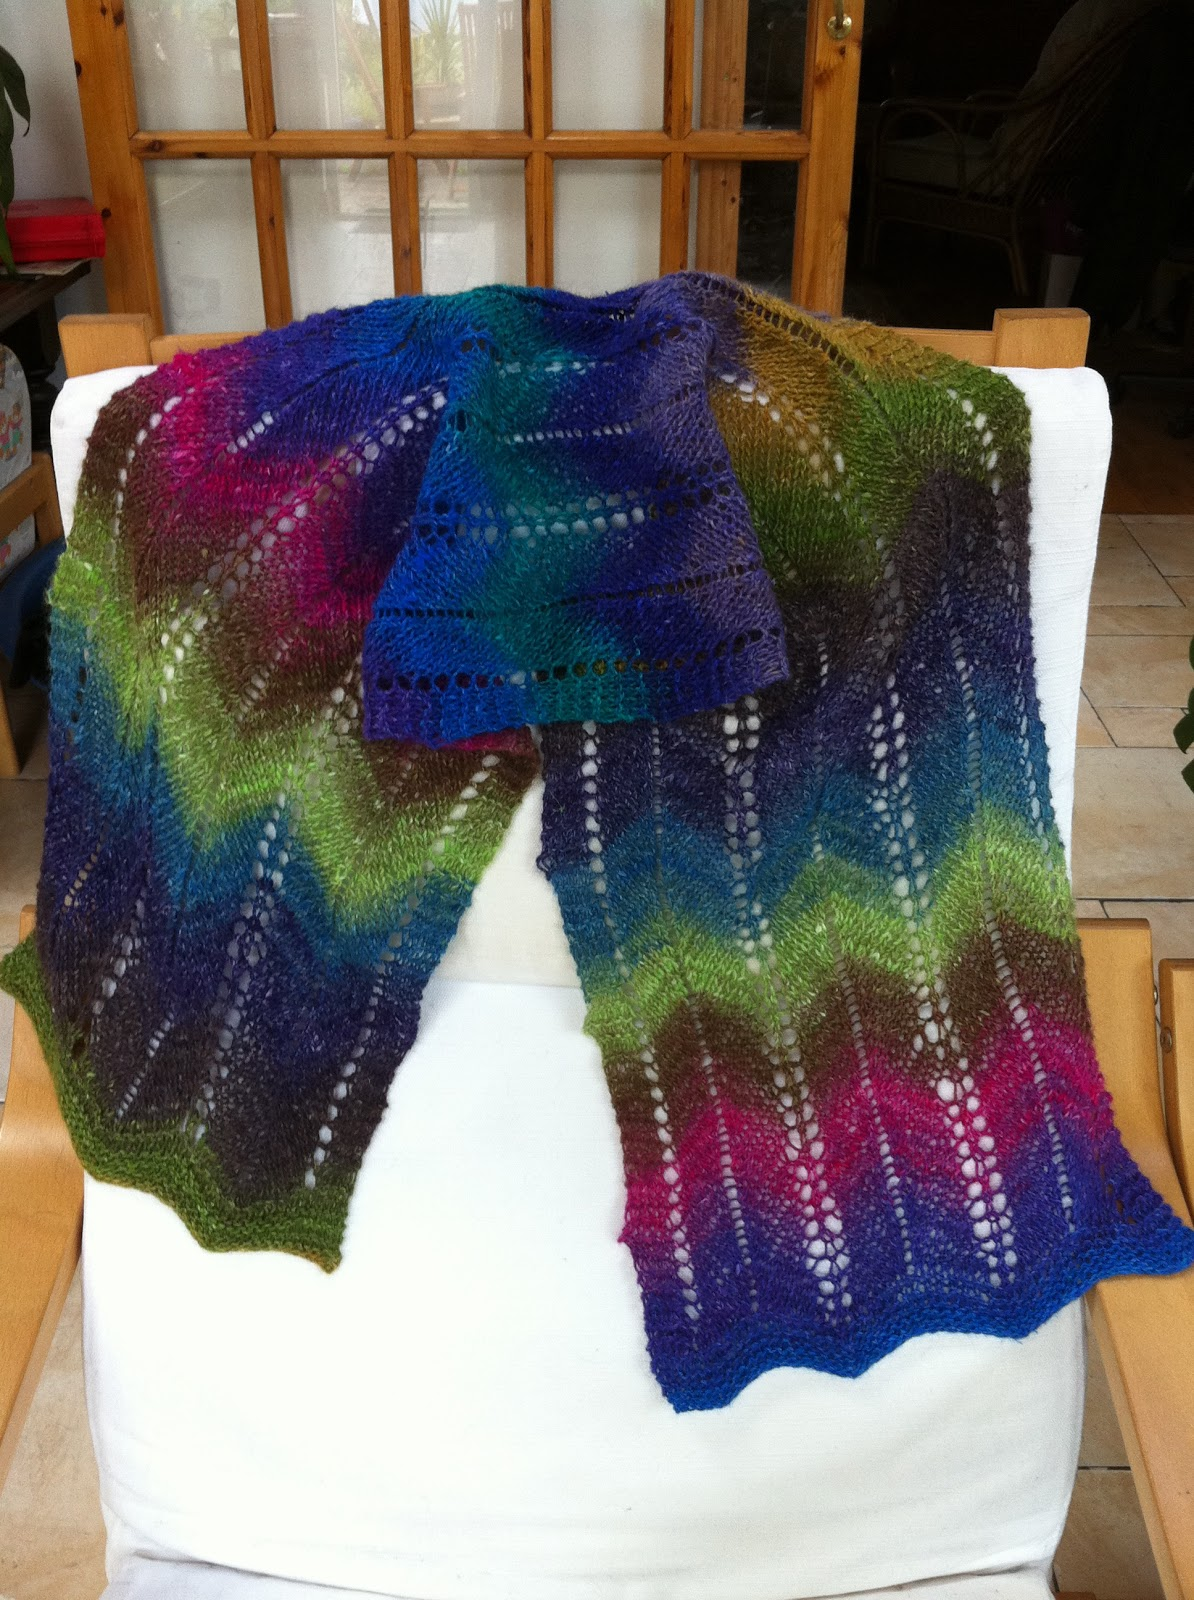 Dispatches from the Deise: Knitting Noro Silk Garden - from Sock Yarn to Zig-...